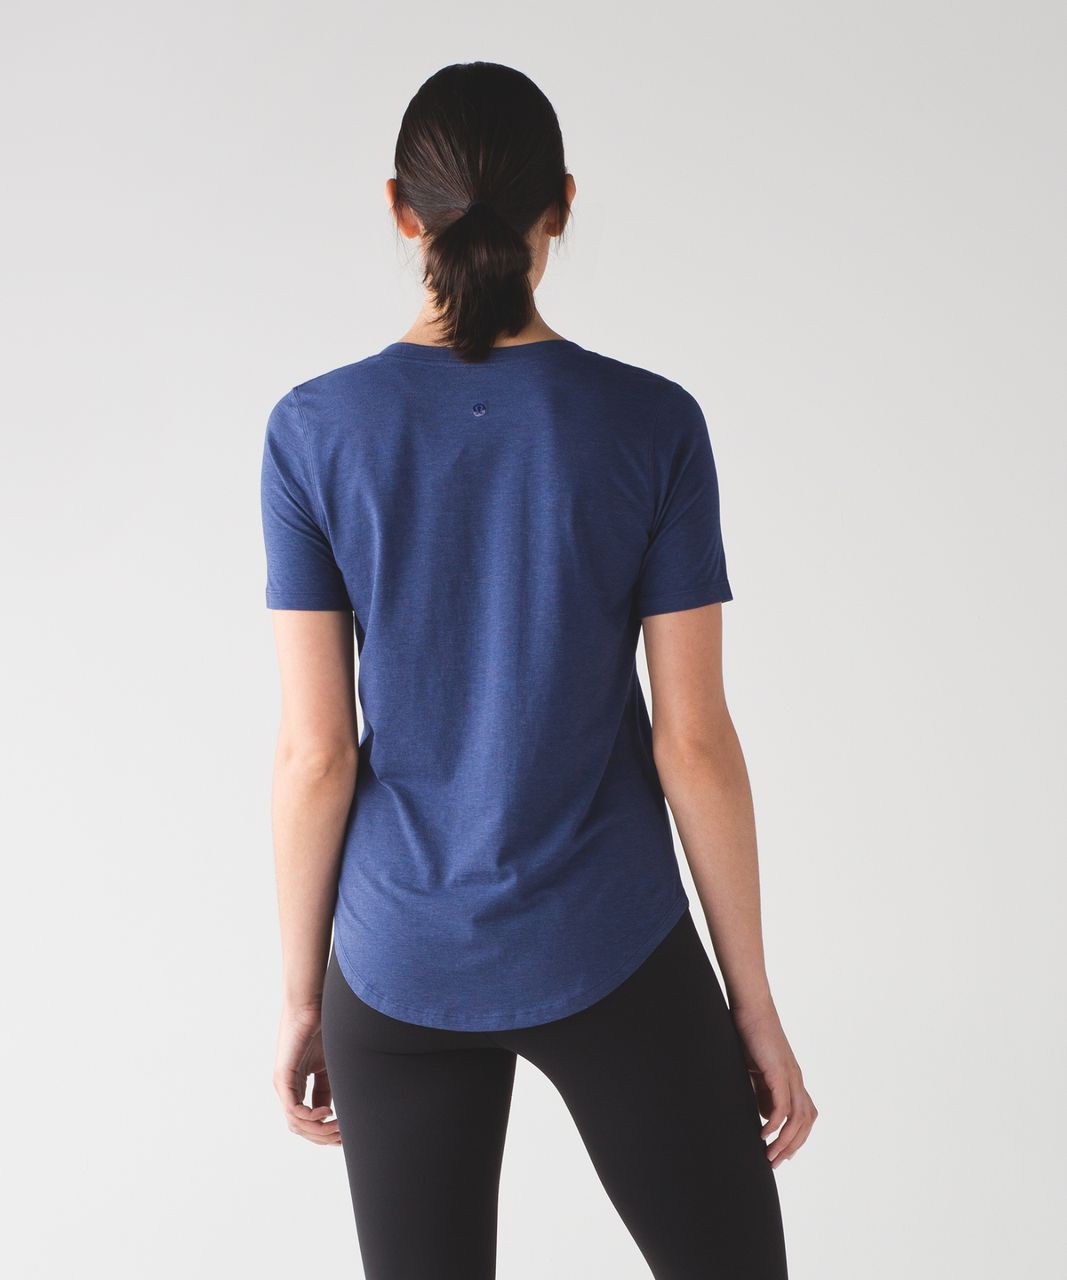 Lululemon Love Tee III - Heathered Emperor Blue